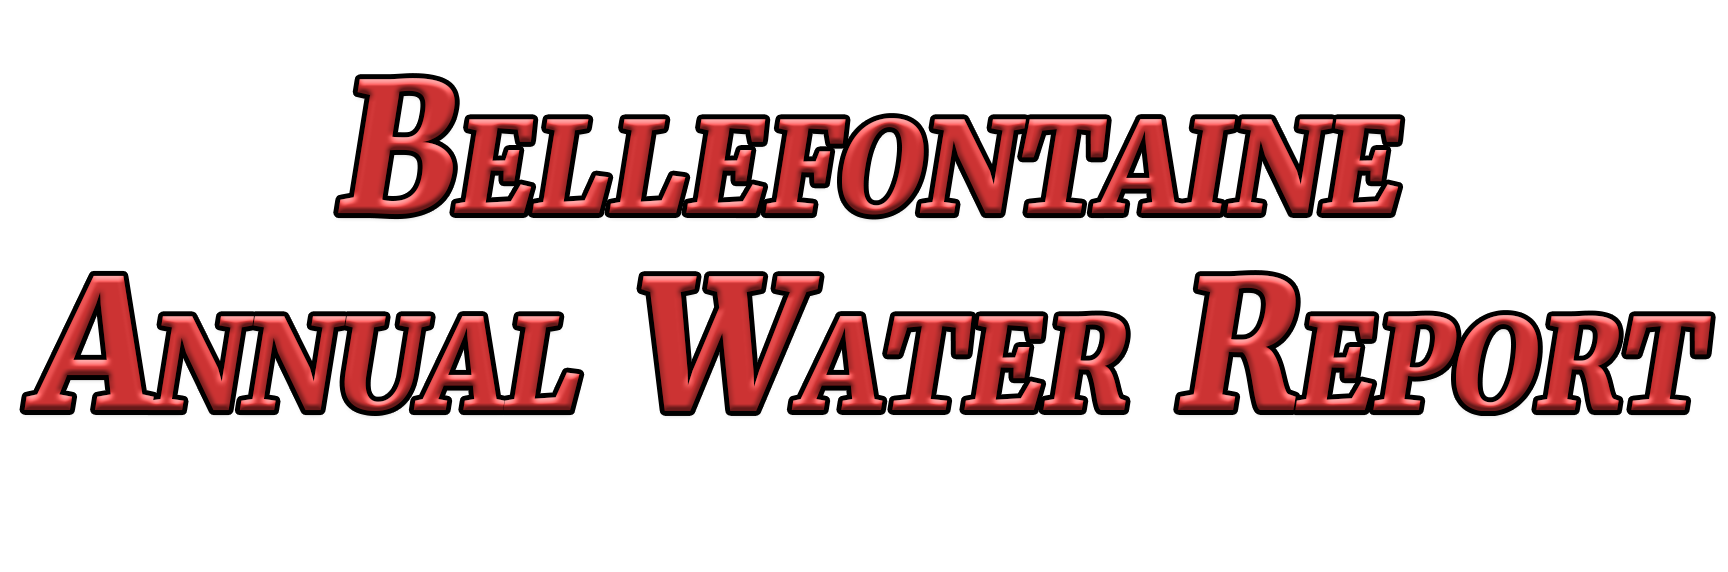 Bellefontaine Annual Water Report